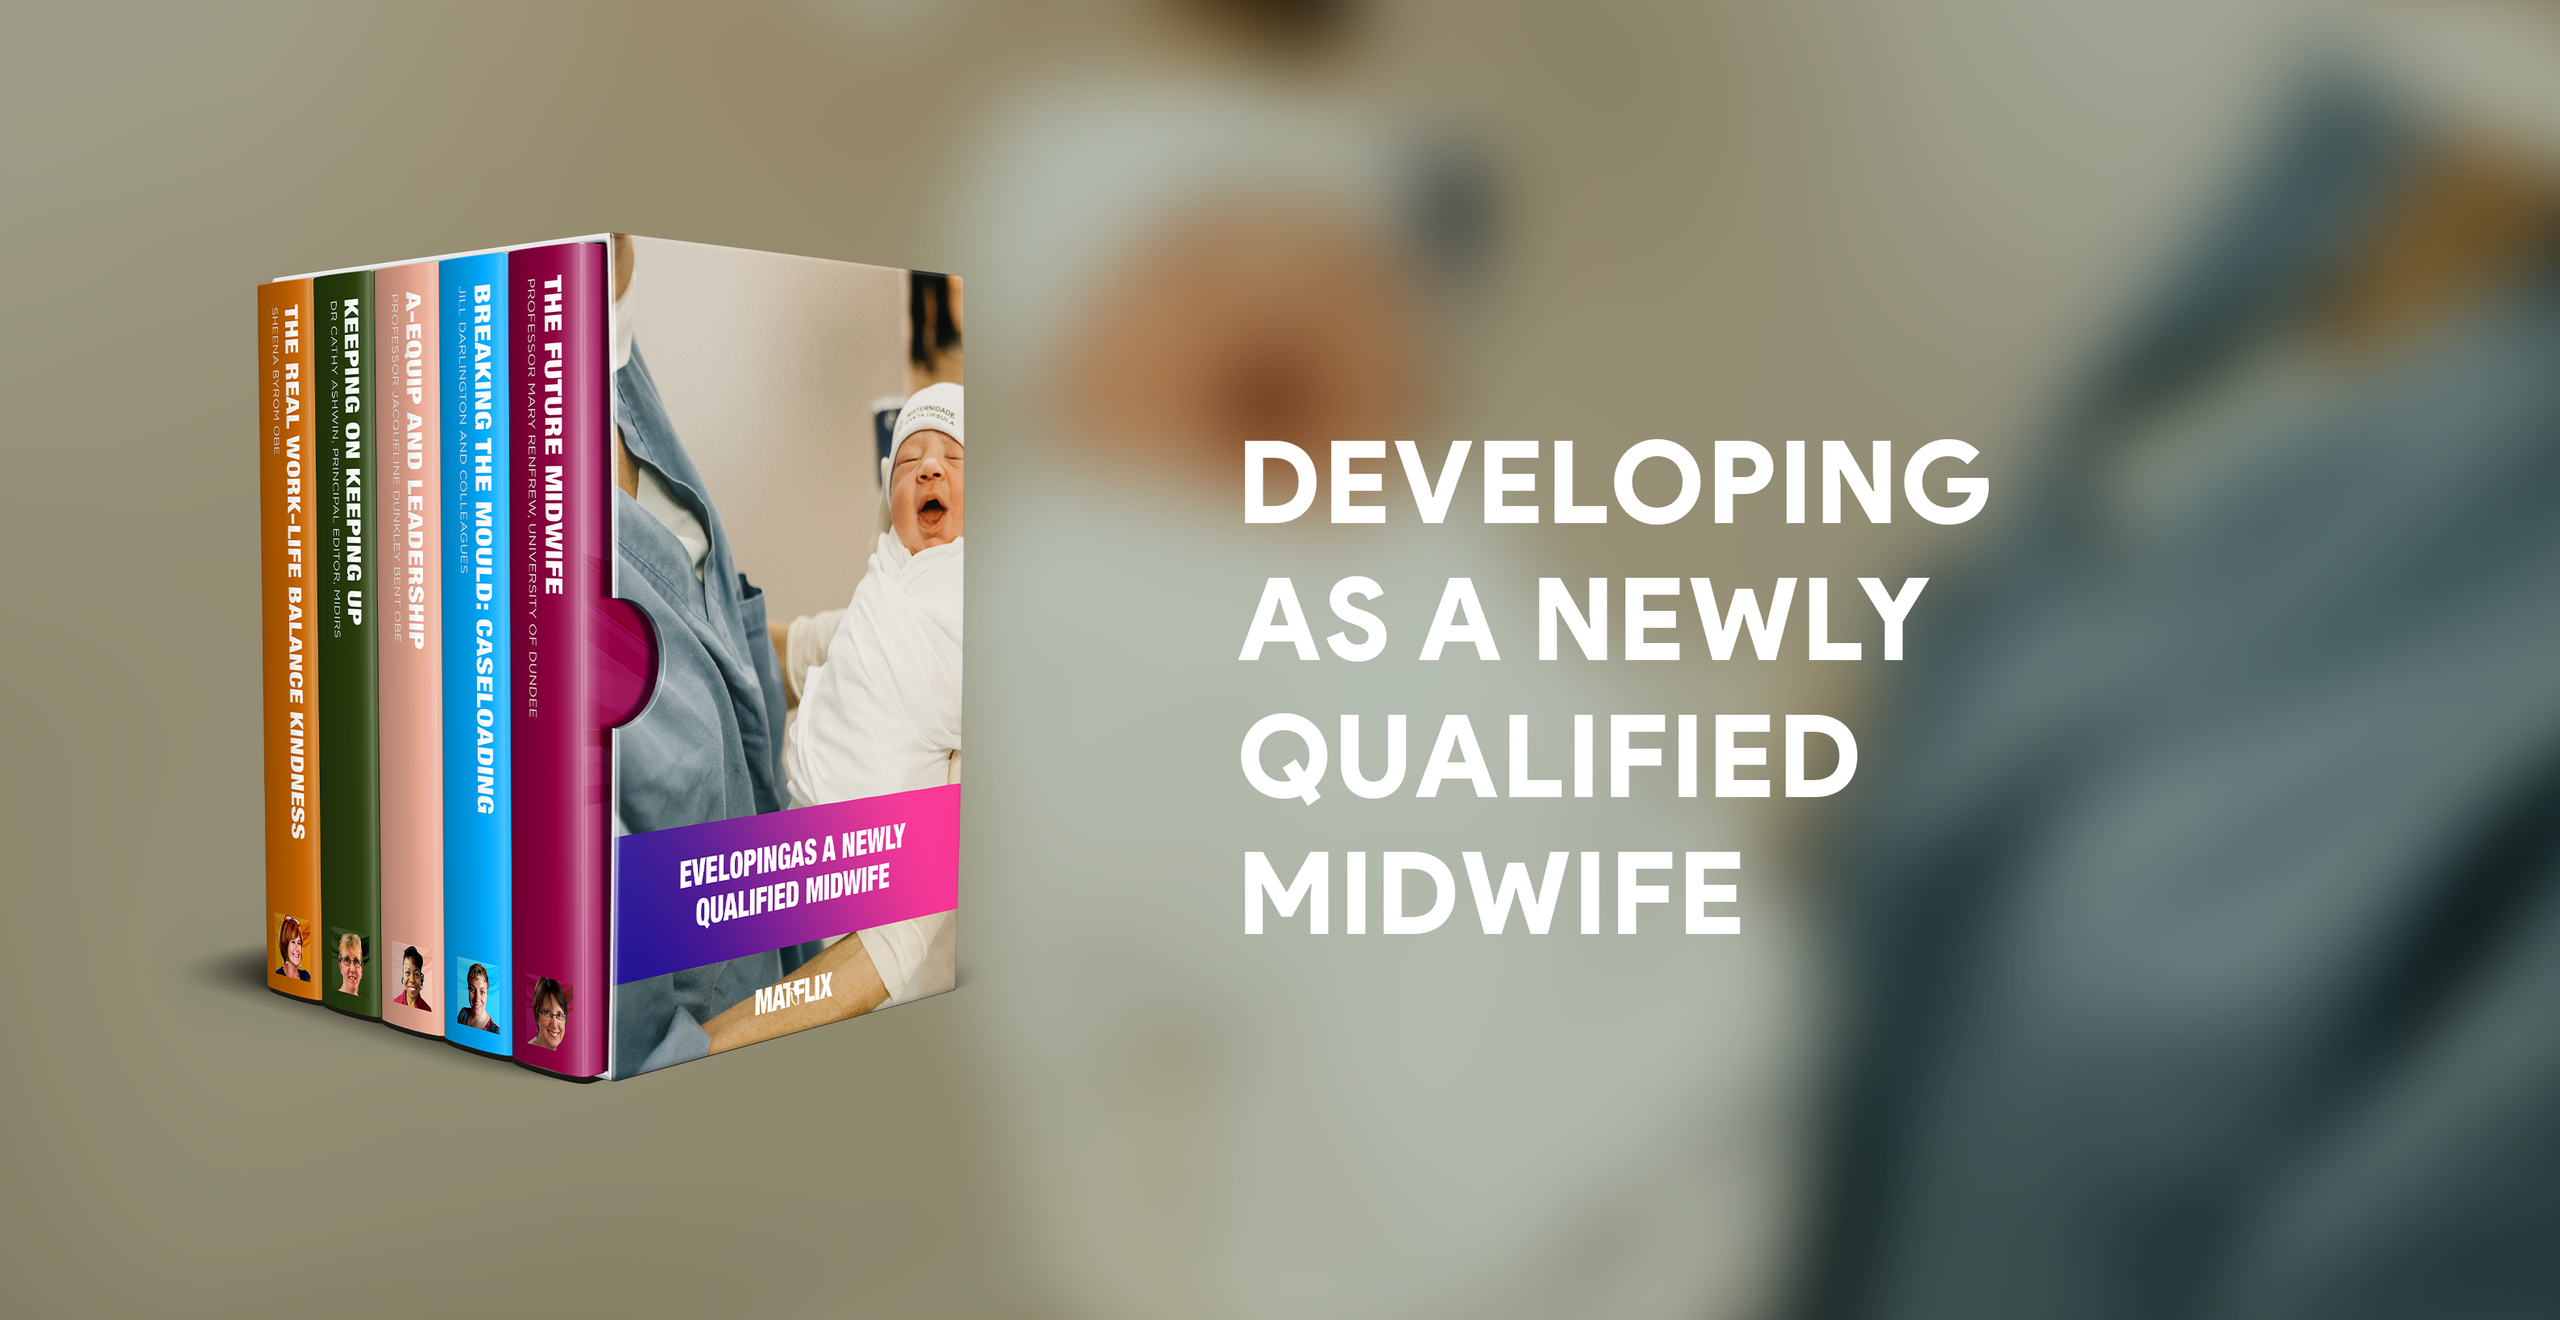 DEVELOPING AS A NEWLY  QUALIFIED MIDWIFE